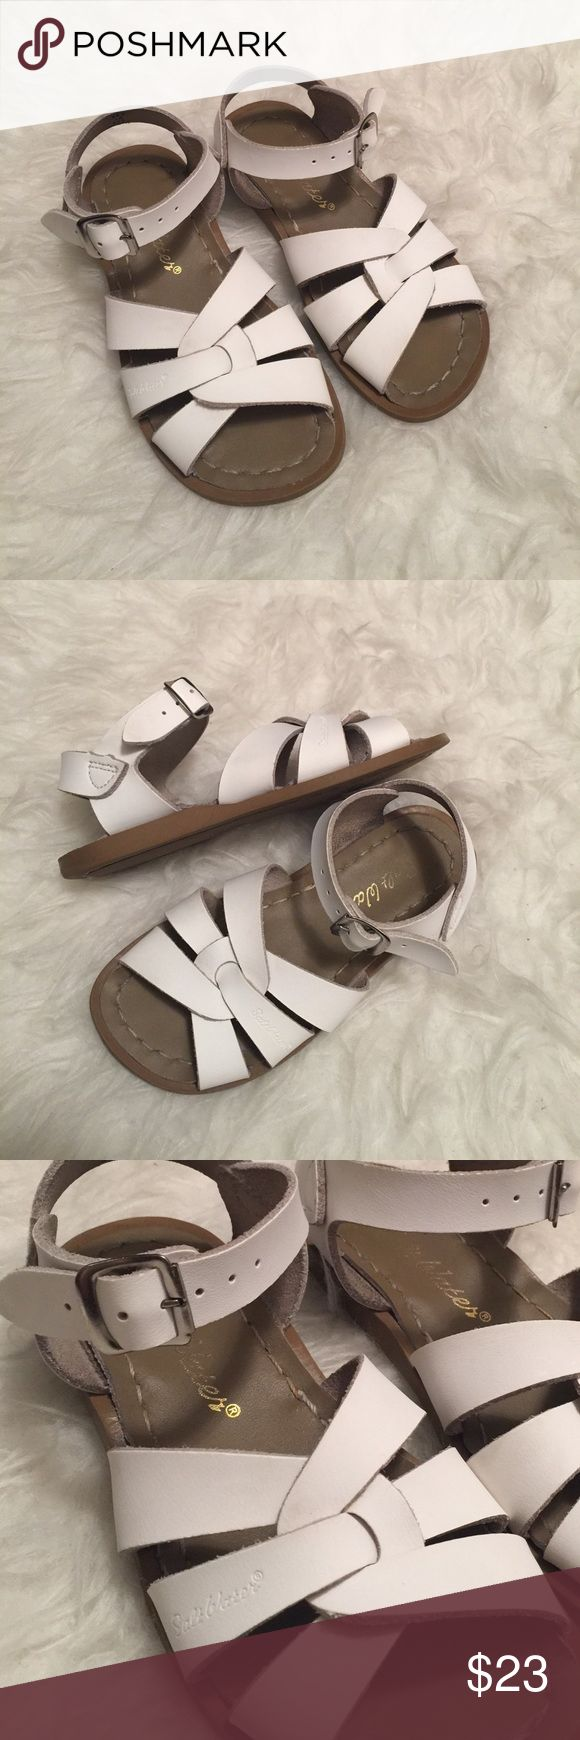 White salt water sandals. Toddler salt water shoes Excellent used condition toddler size 10 Salt Water white sandals. Very minimal wear. No holes or tears. Amazing condition. Salt Water Sandals by Hoy Shoes Sandals & Flip Flops